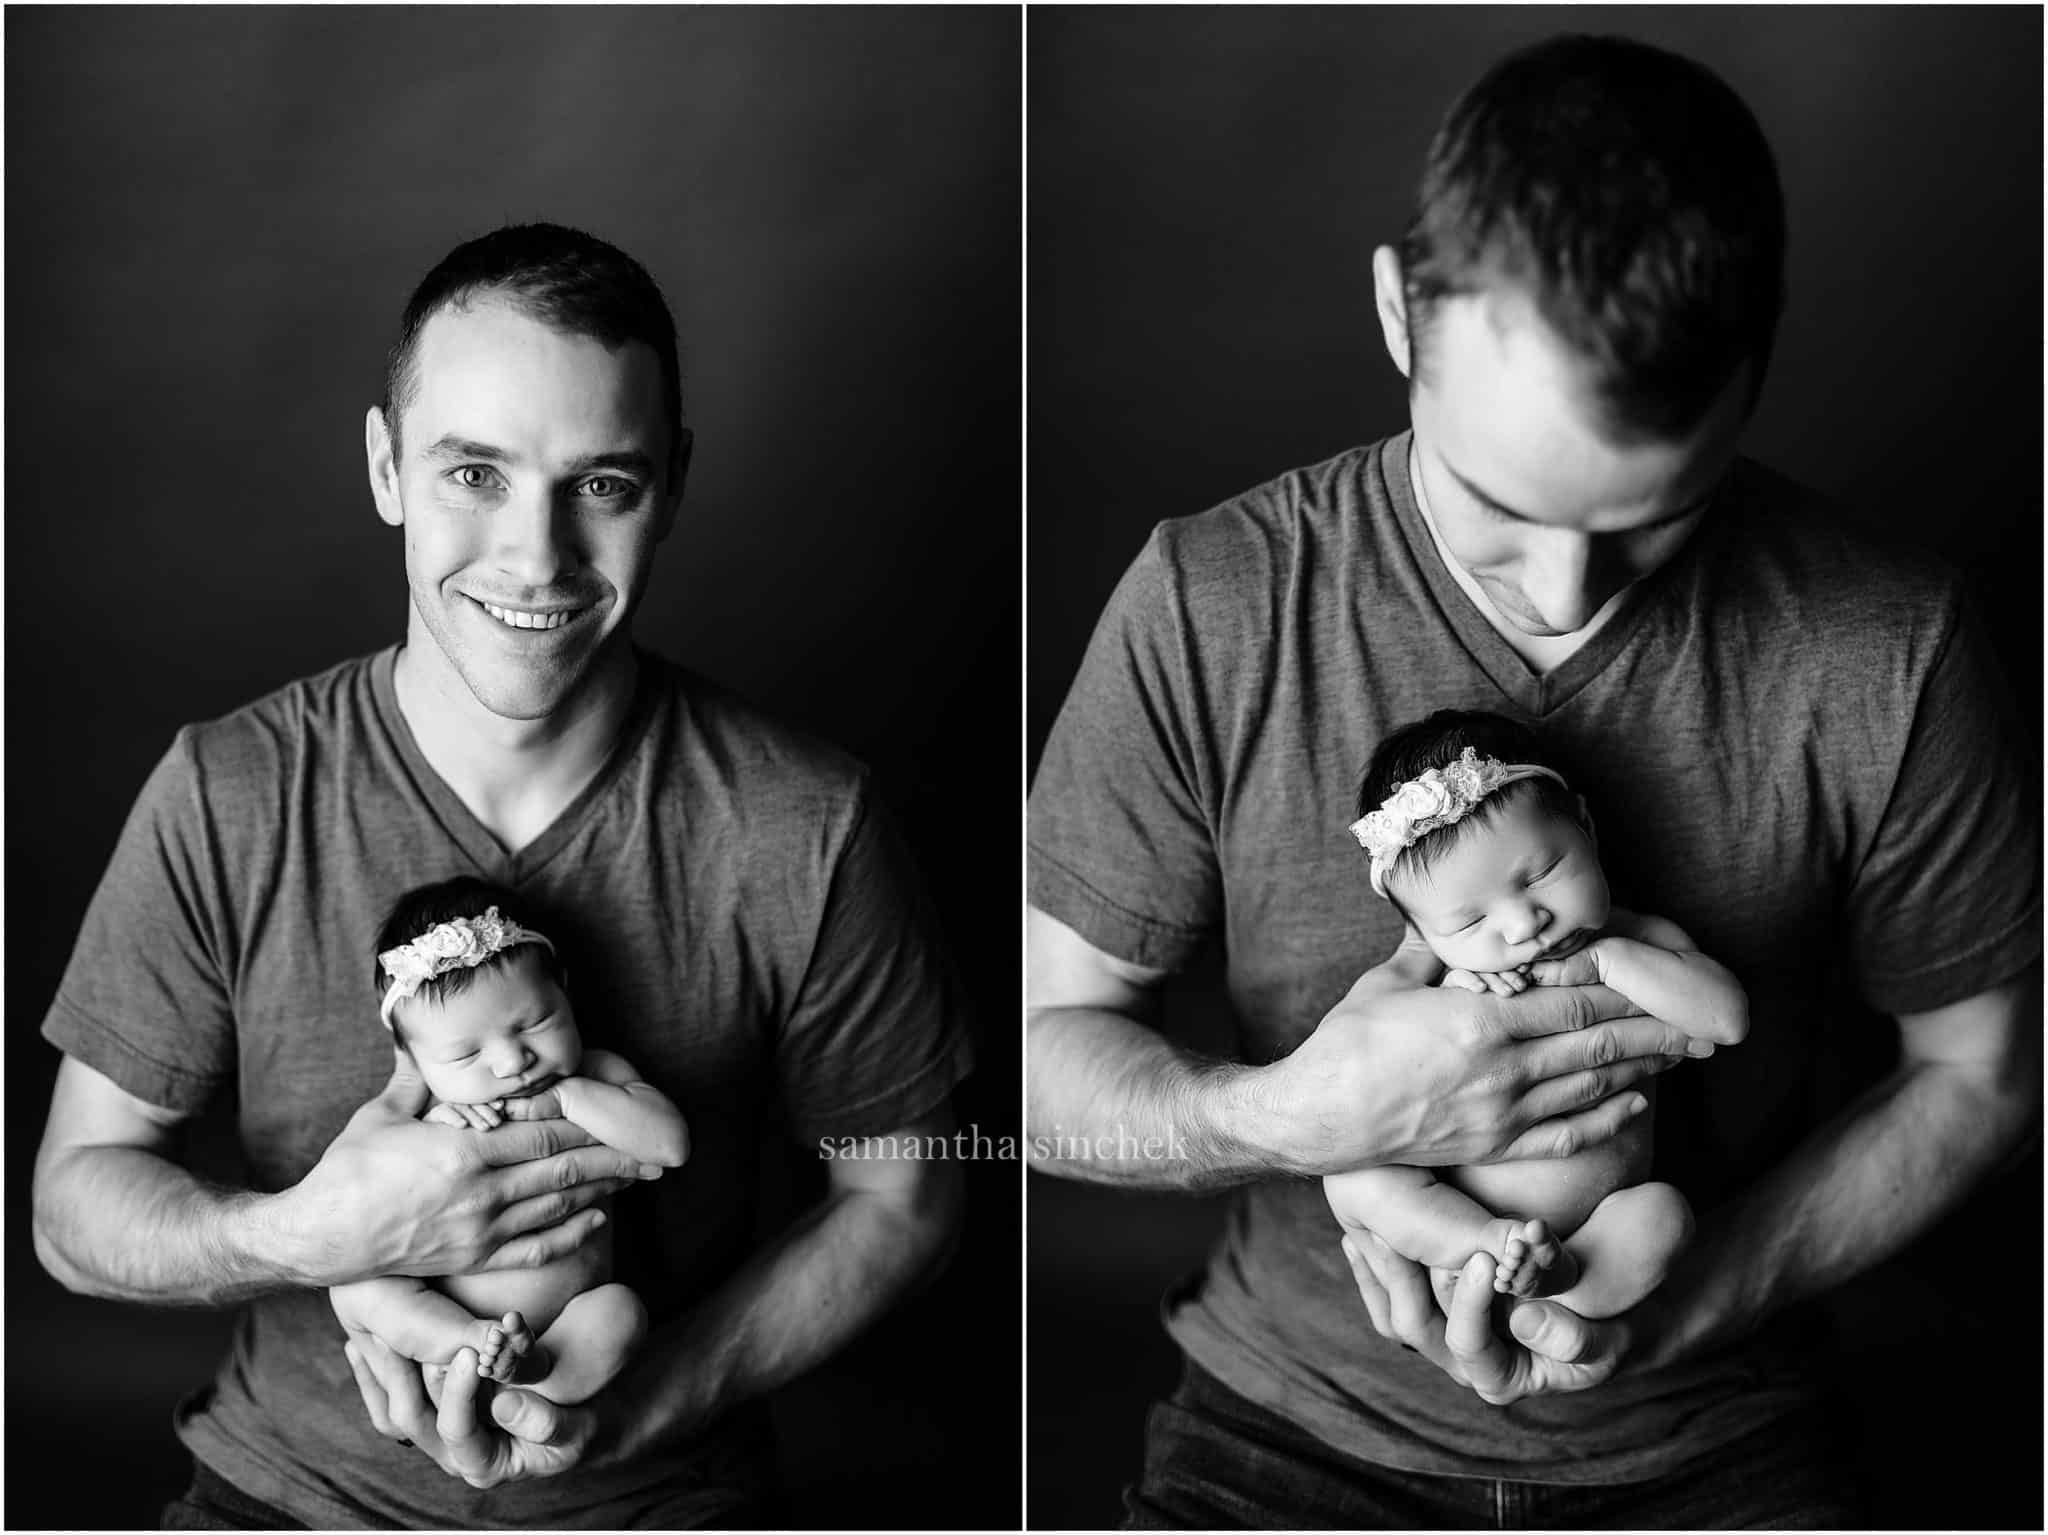 family photo at cincinnati newborn photographer Samantha sinchek